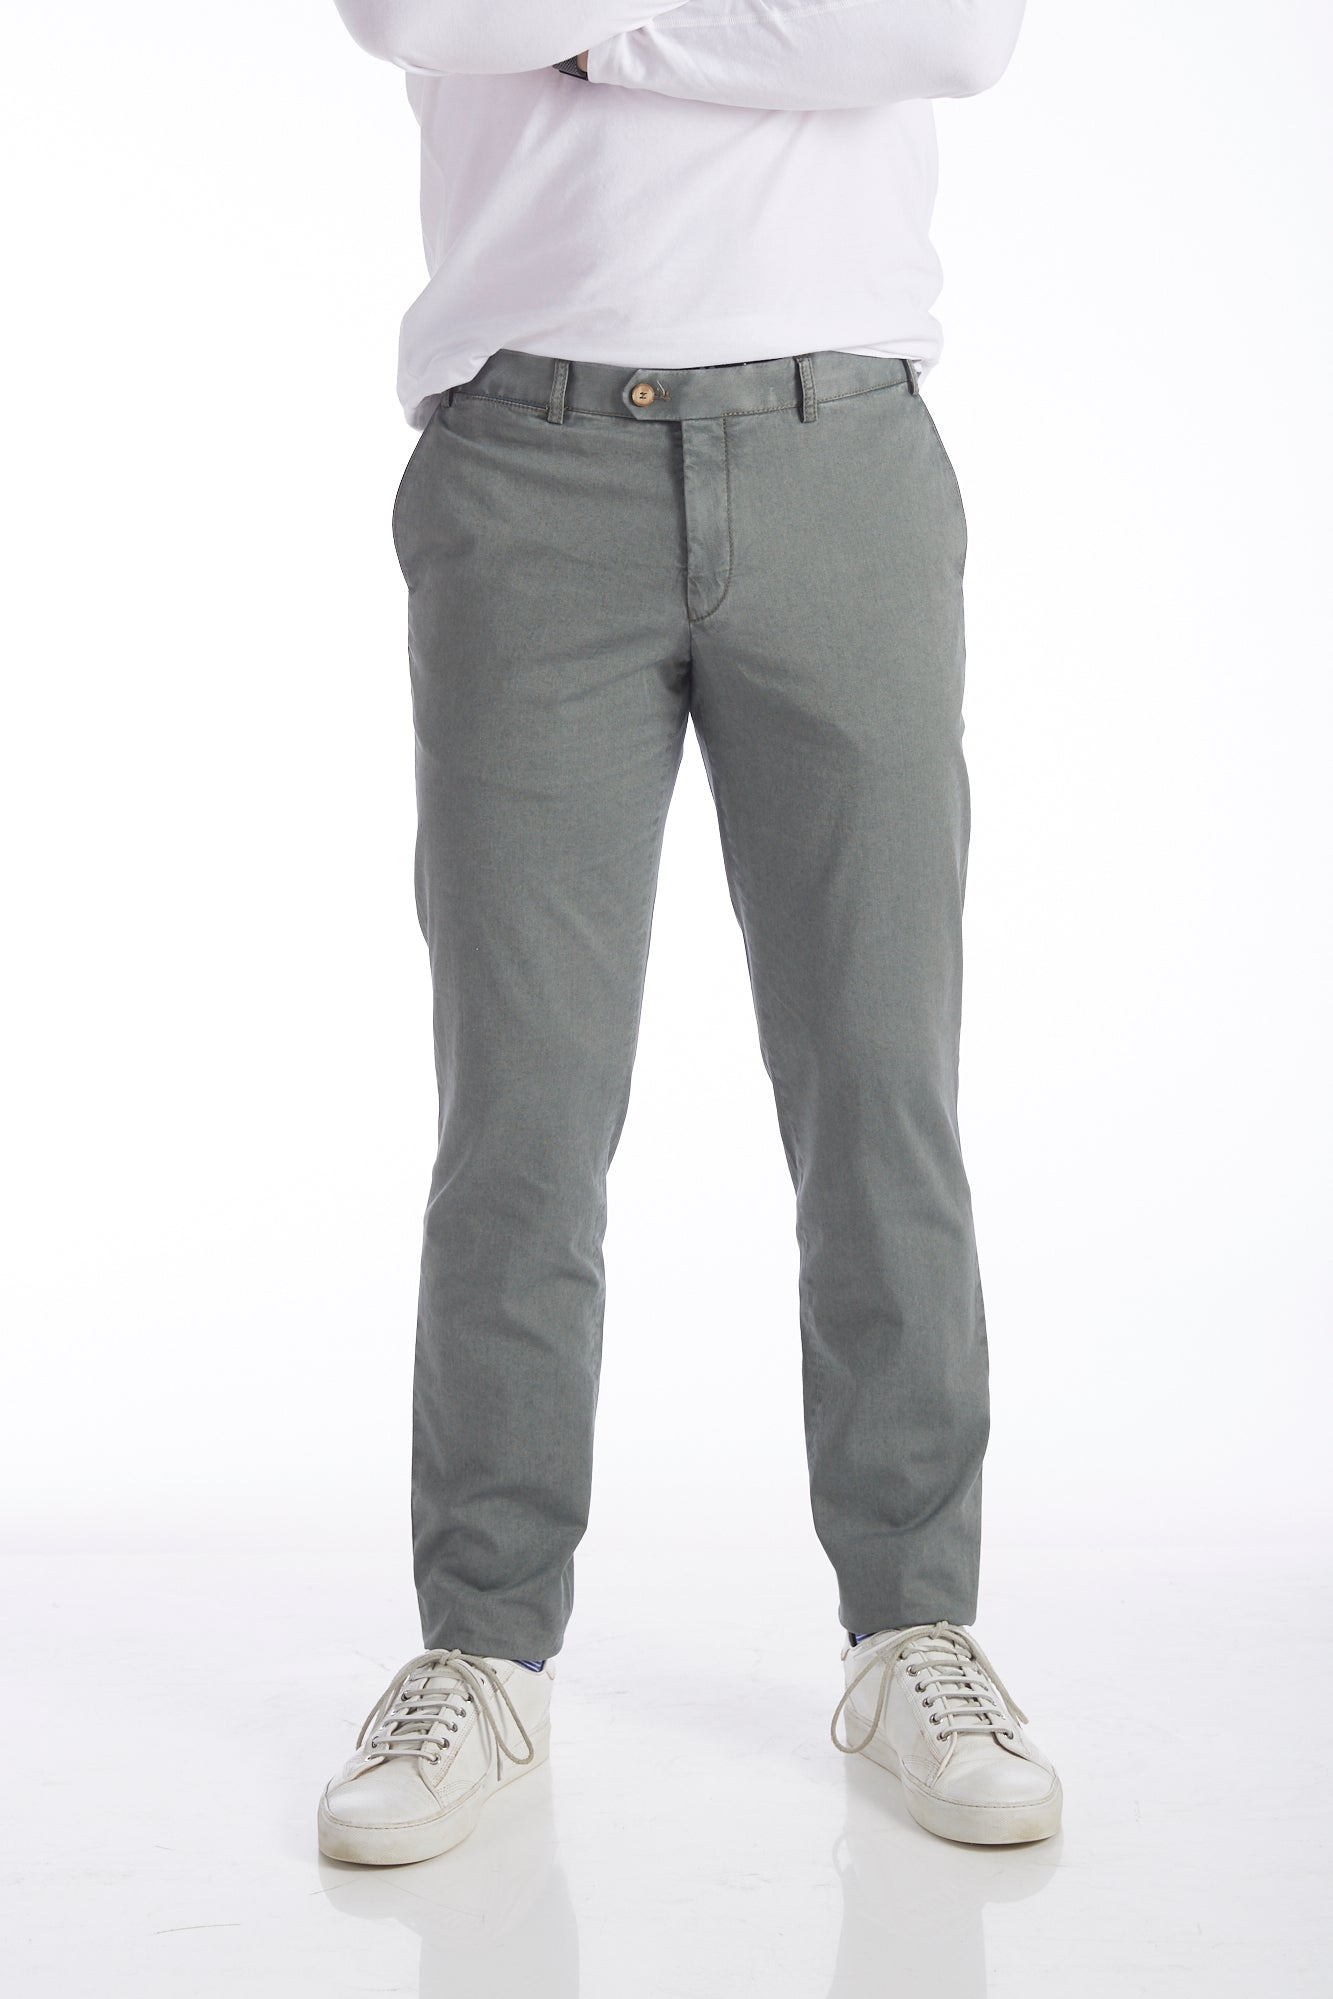 Hiltl Washed Green Cotton Chinos - Pants - Hiltl - LALONDE's